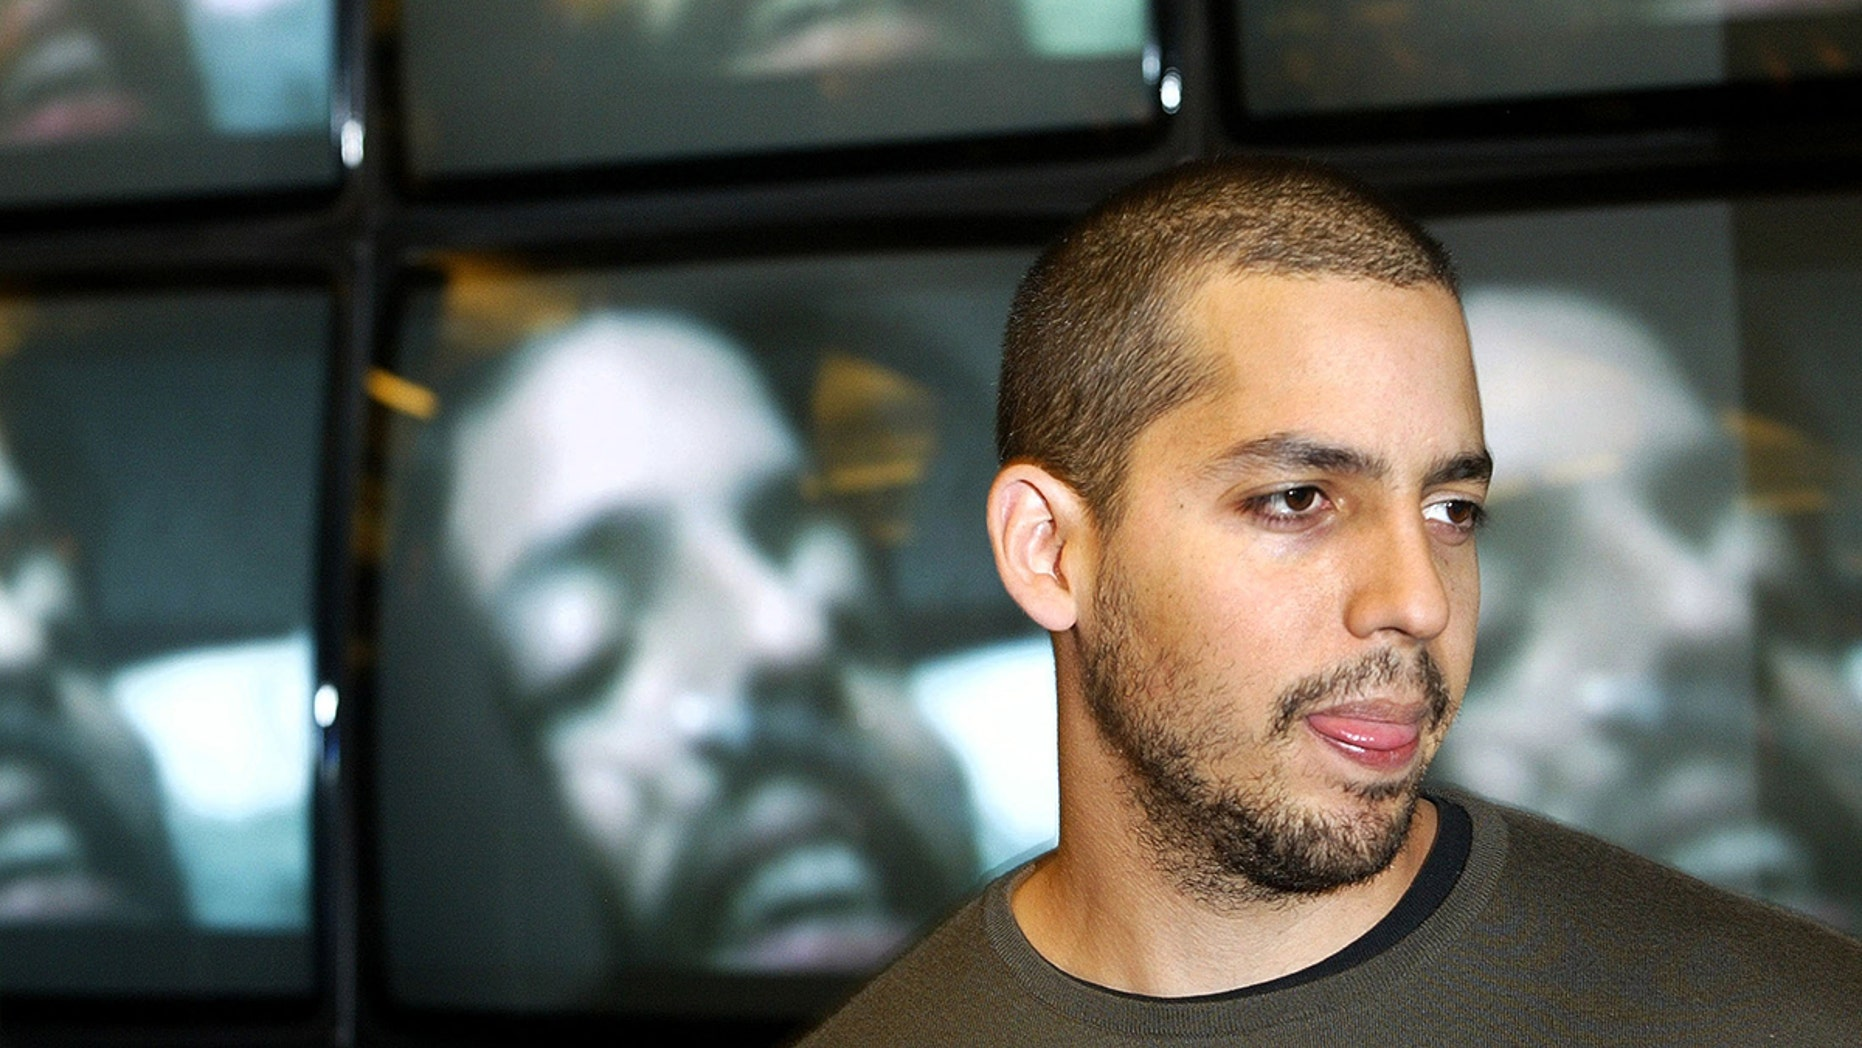 Magician David Blaine, pictured here at a promotional event in London in 2003, is being investigated for rape.